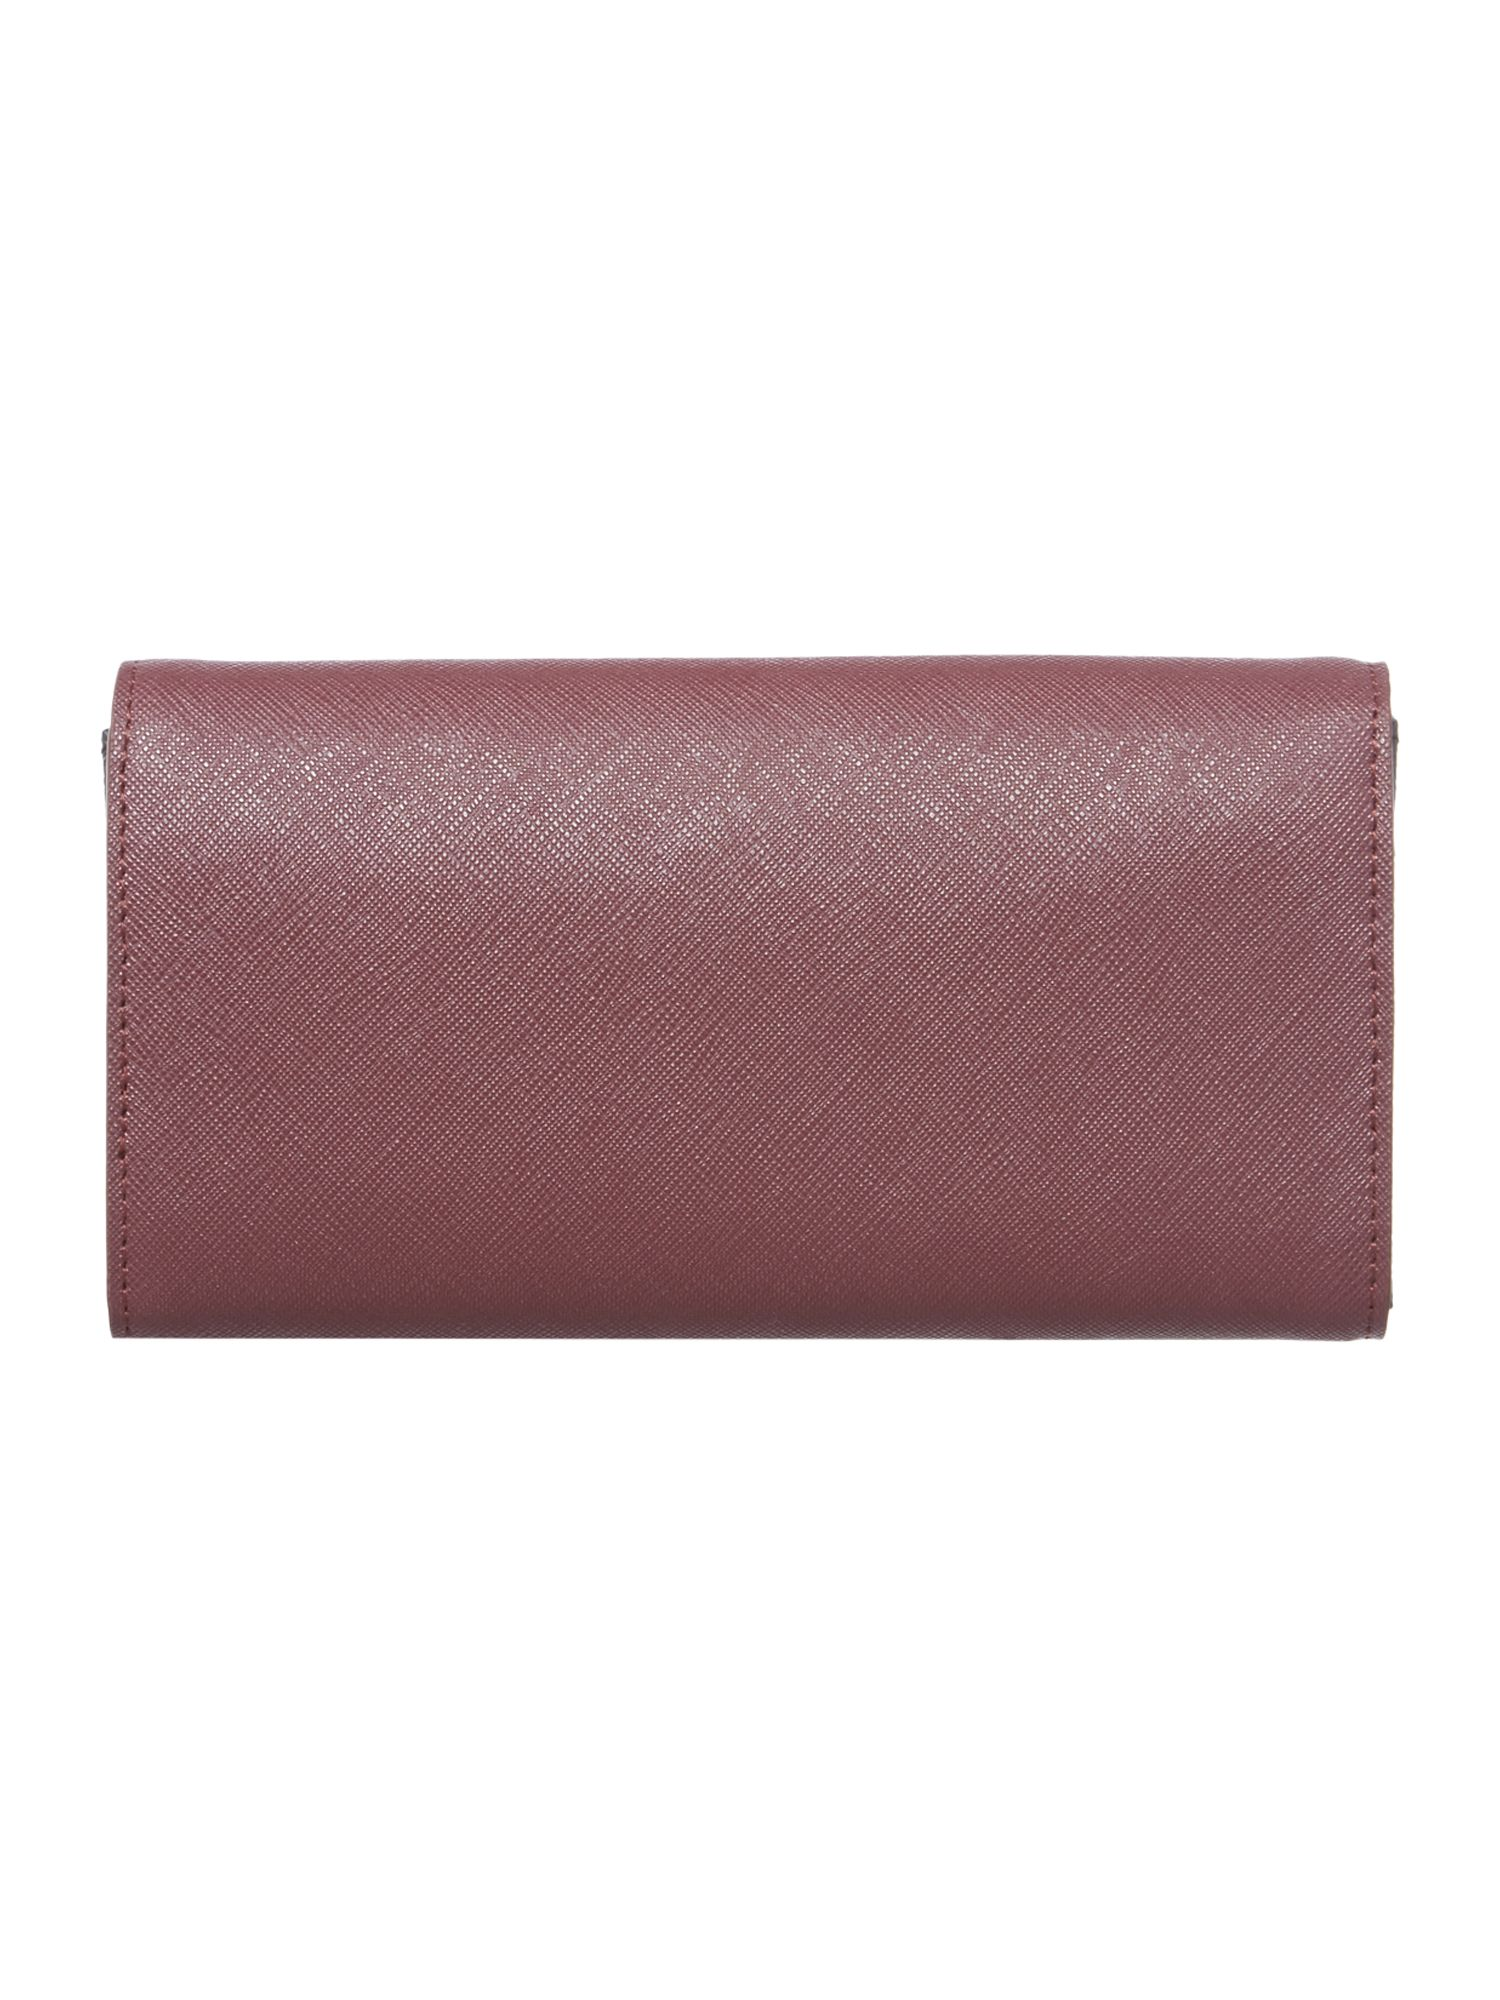 Bryant park purple large envelope flap over purse